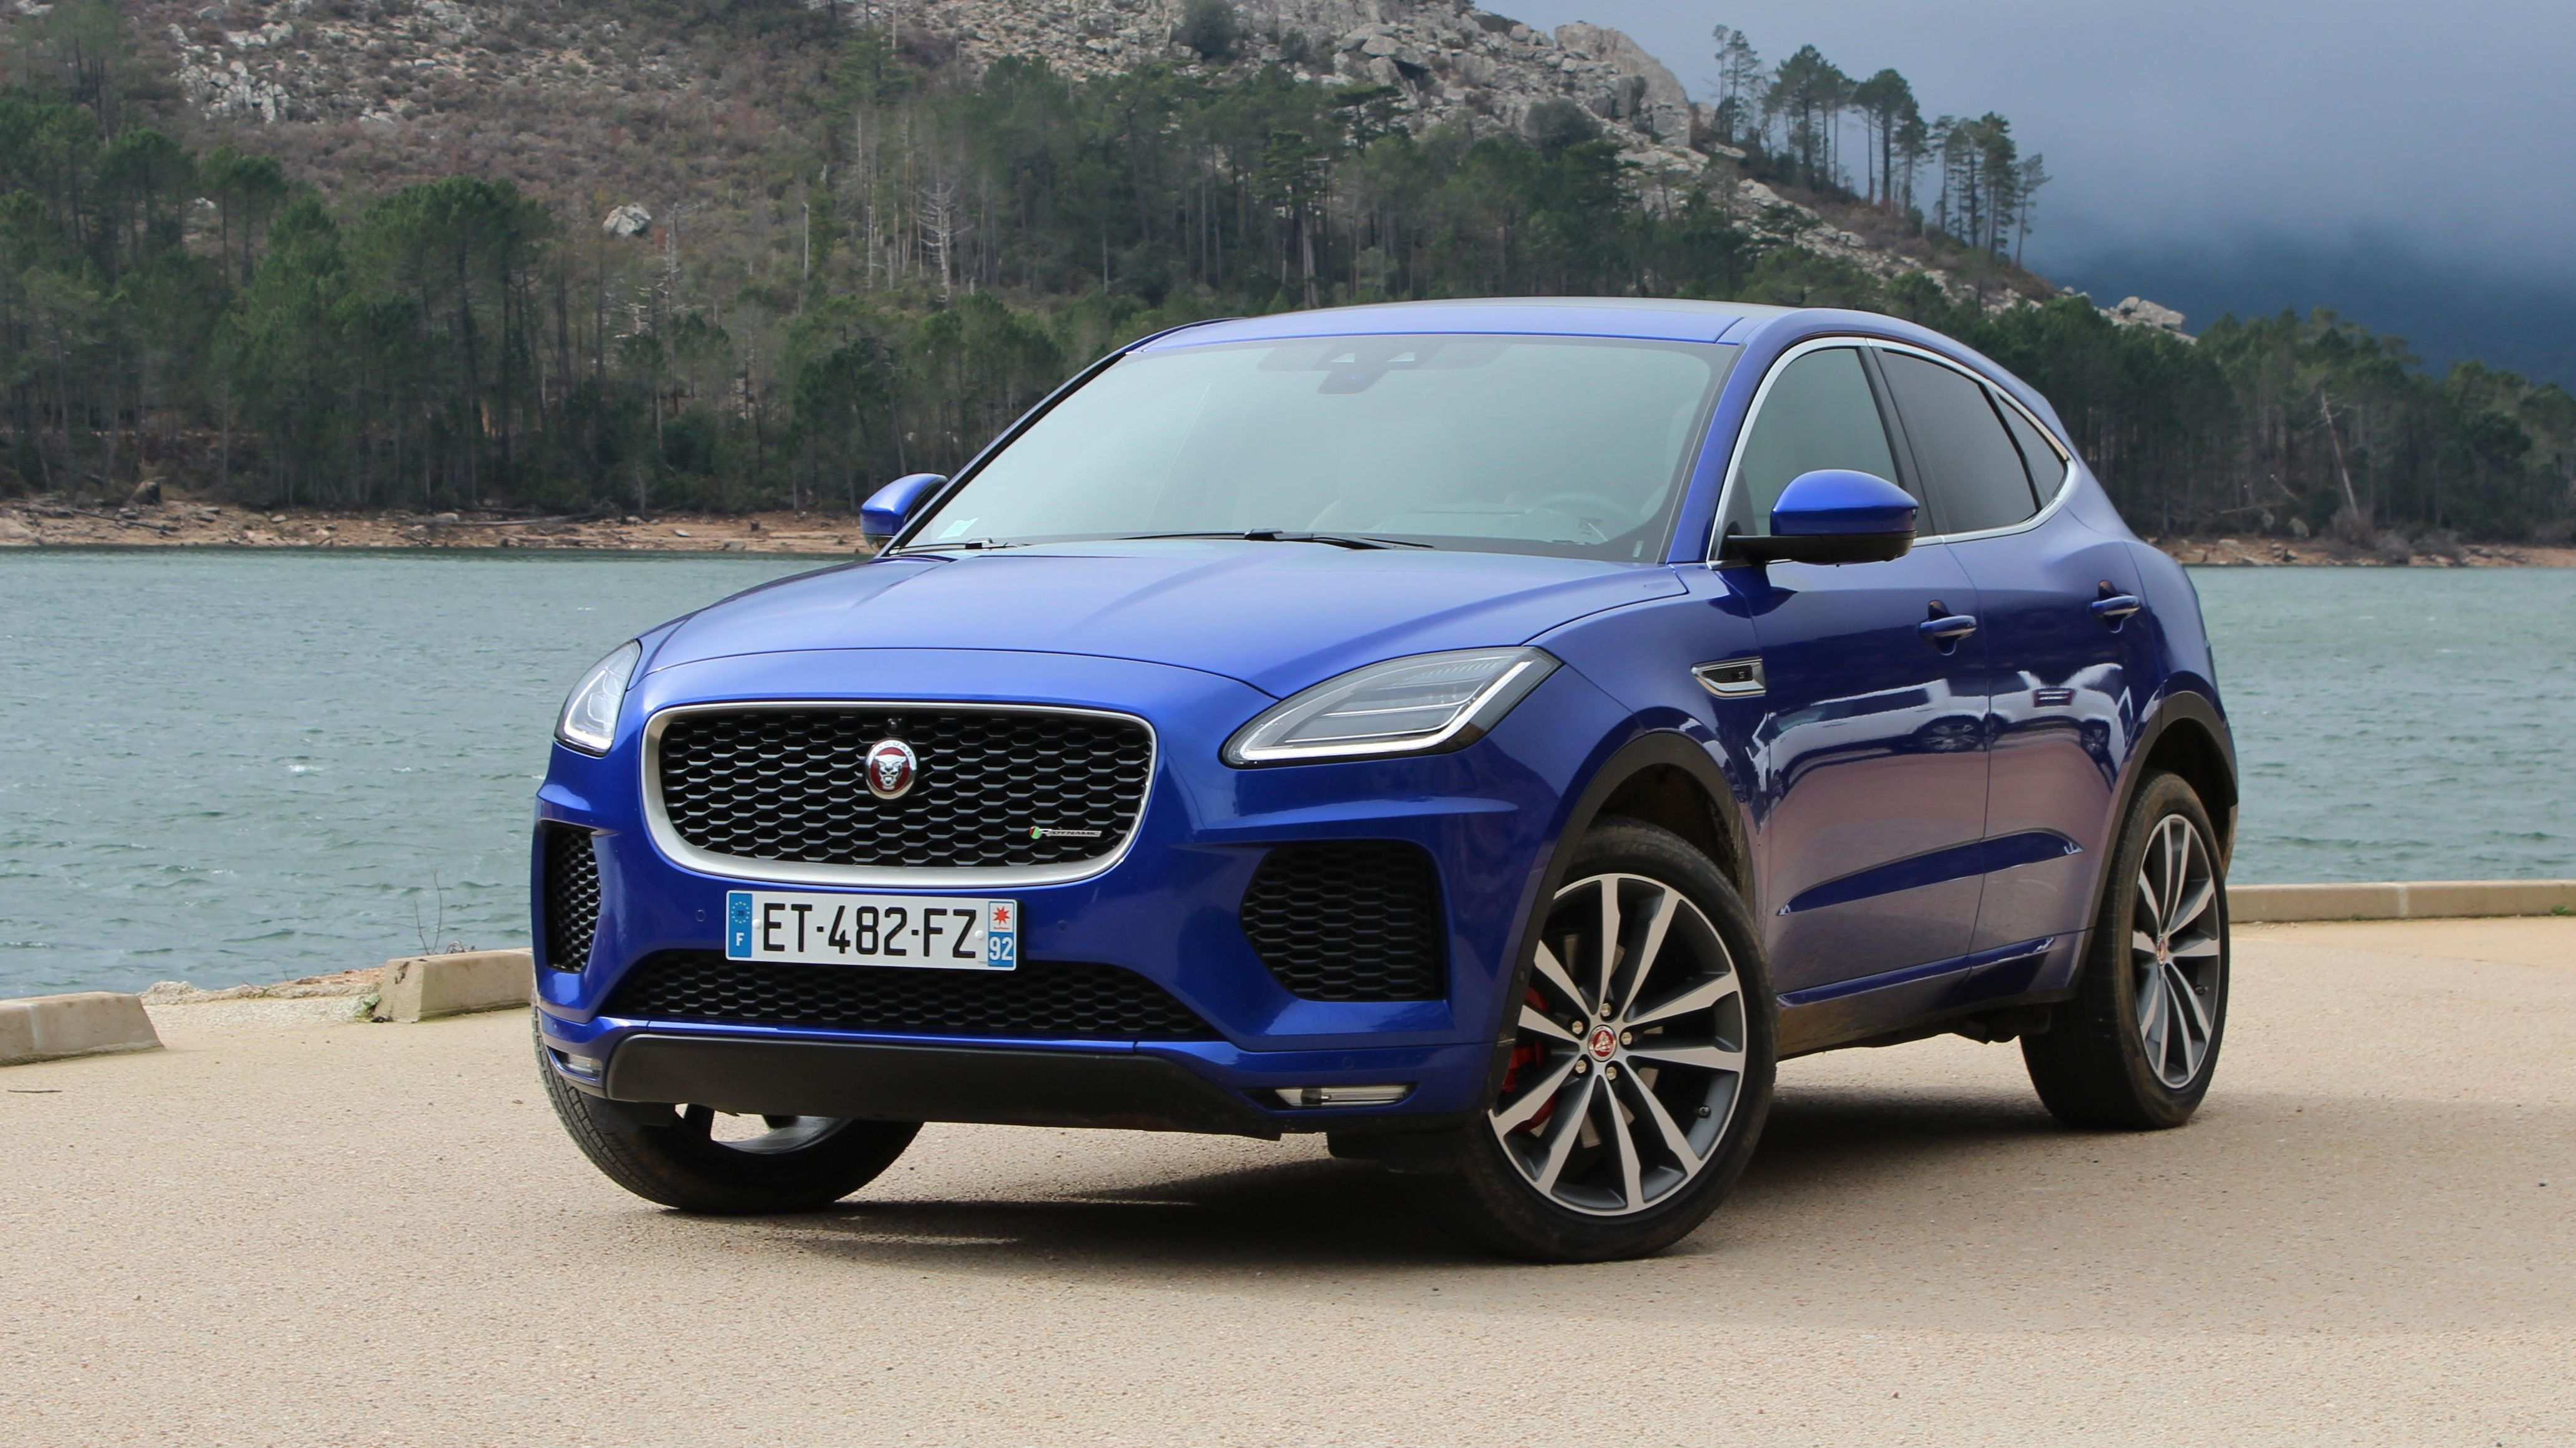 51 The Best E Pace Jaguar 2019 New Concept